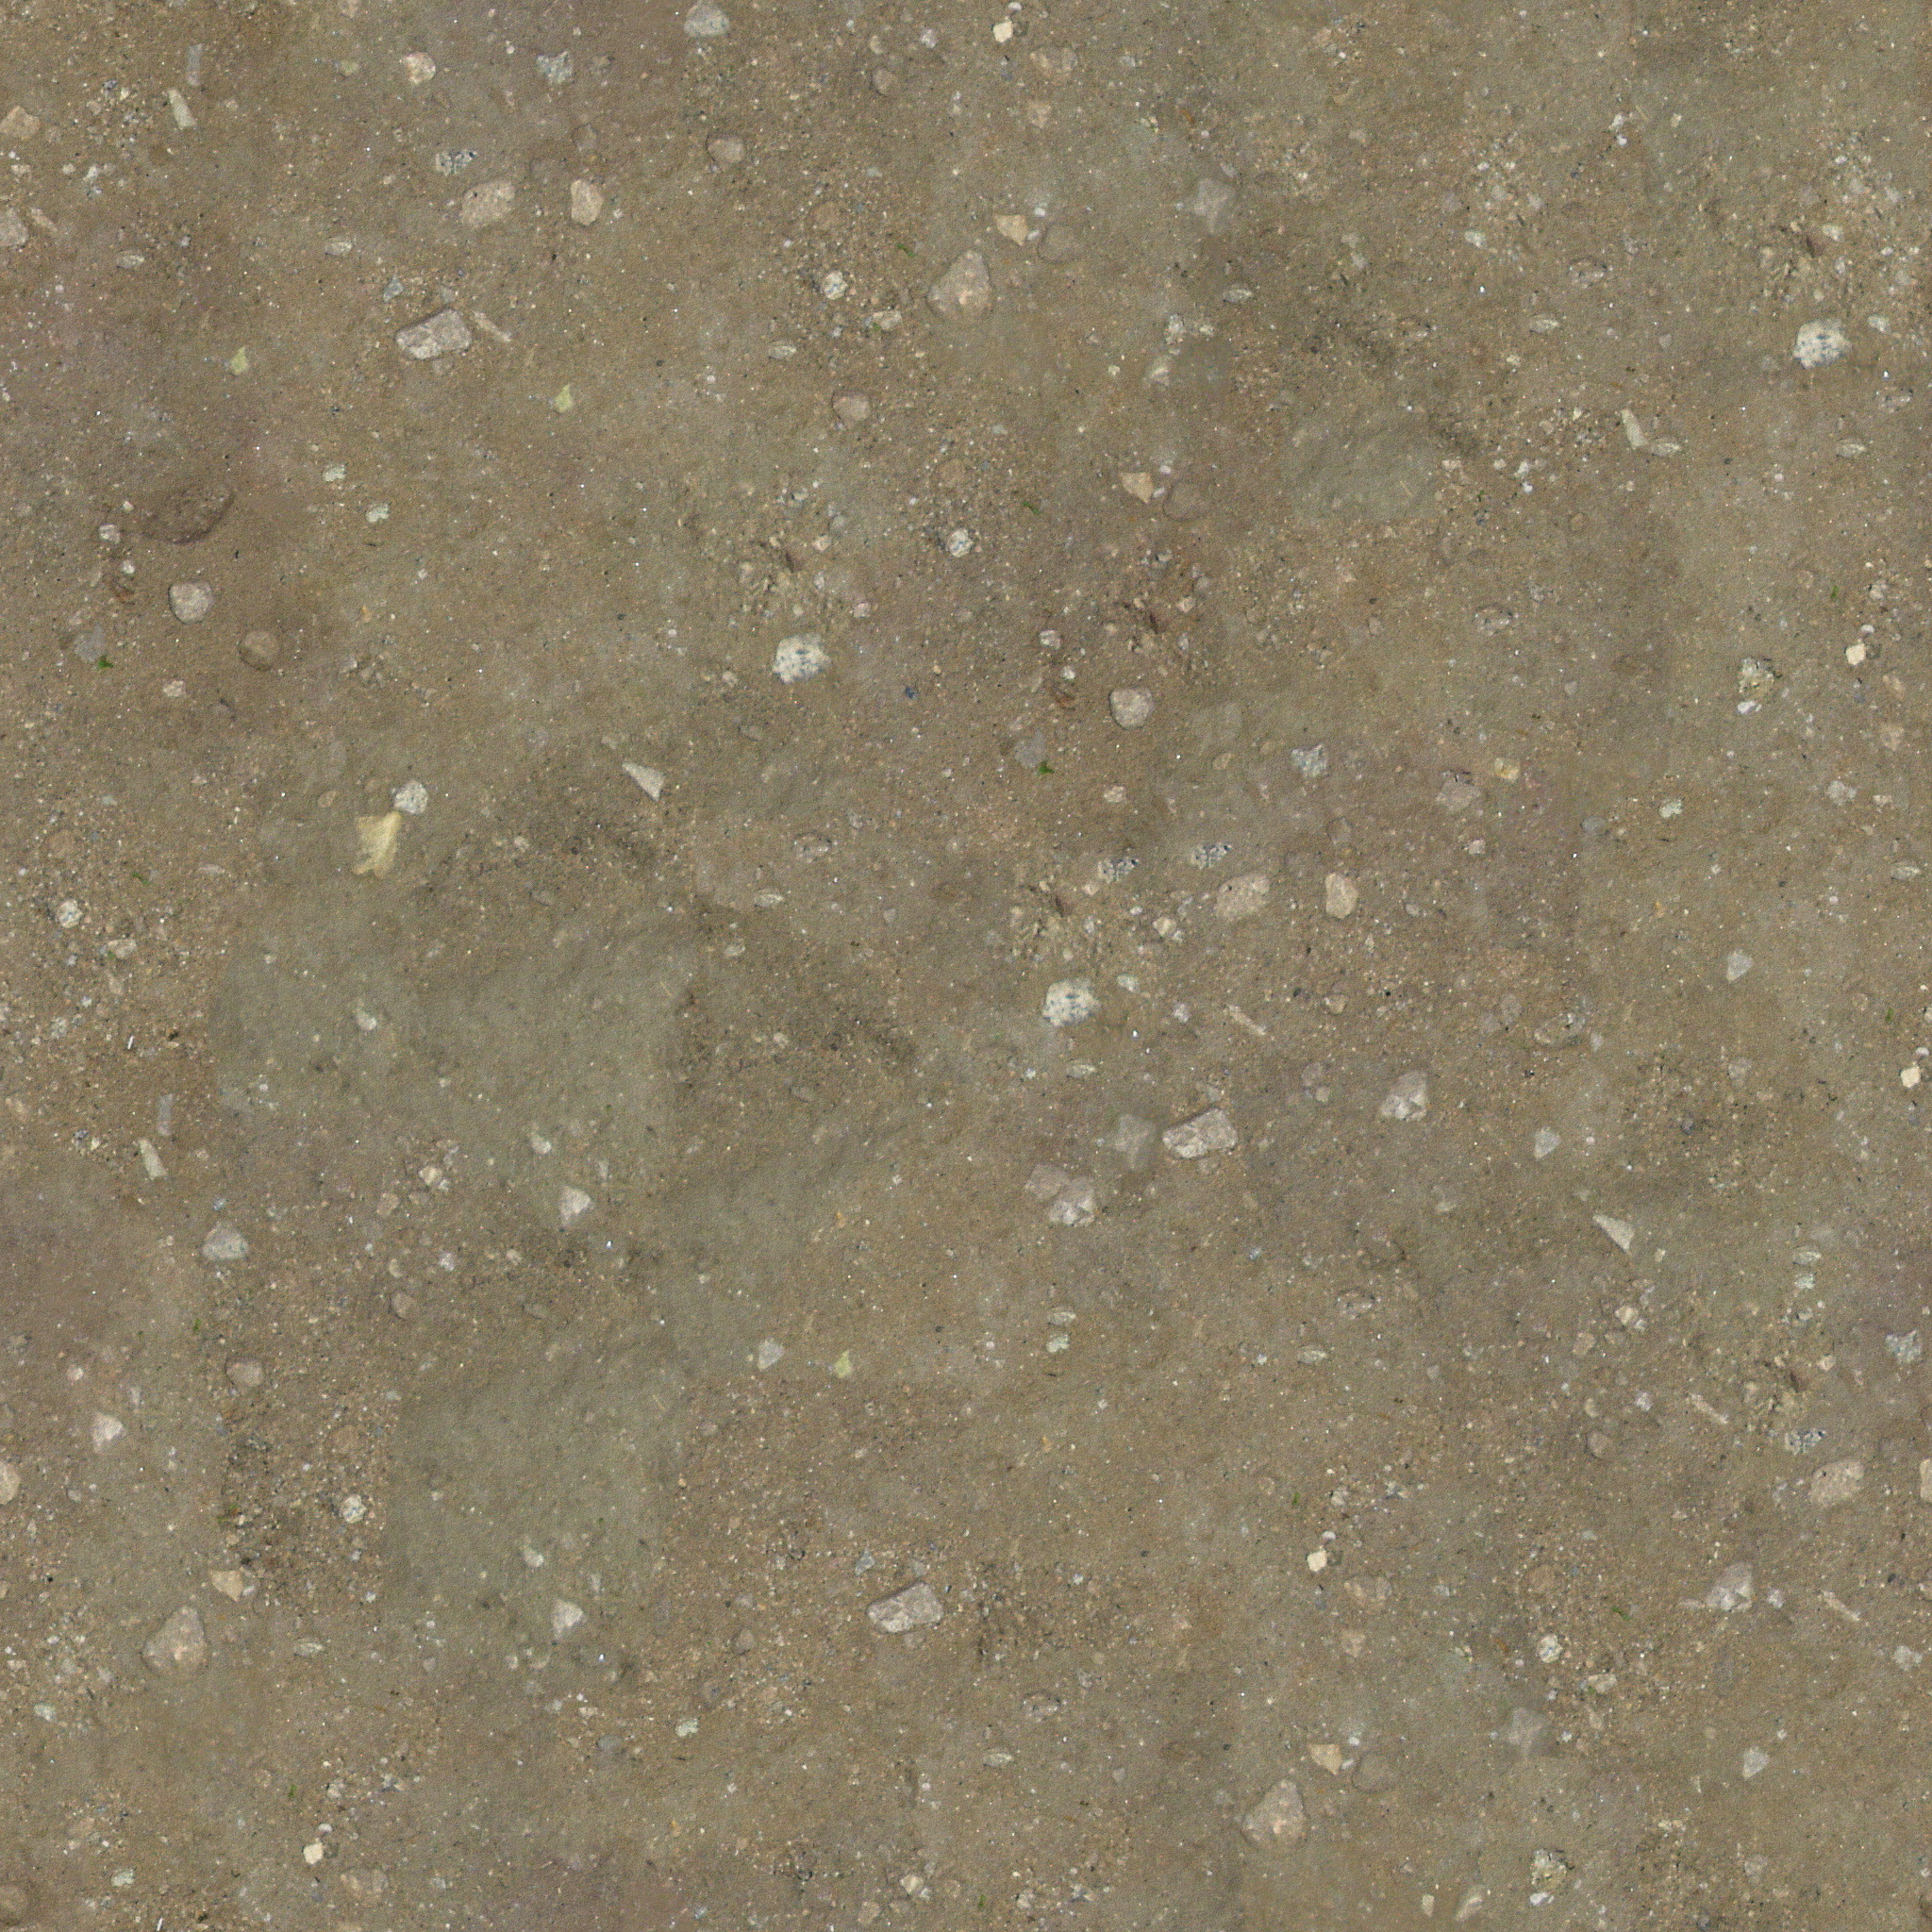 Earth/Ground texture #2 - Seamless - 2K